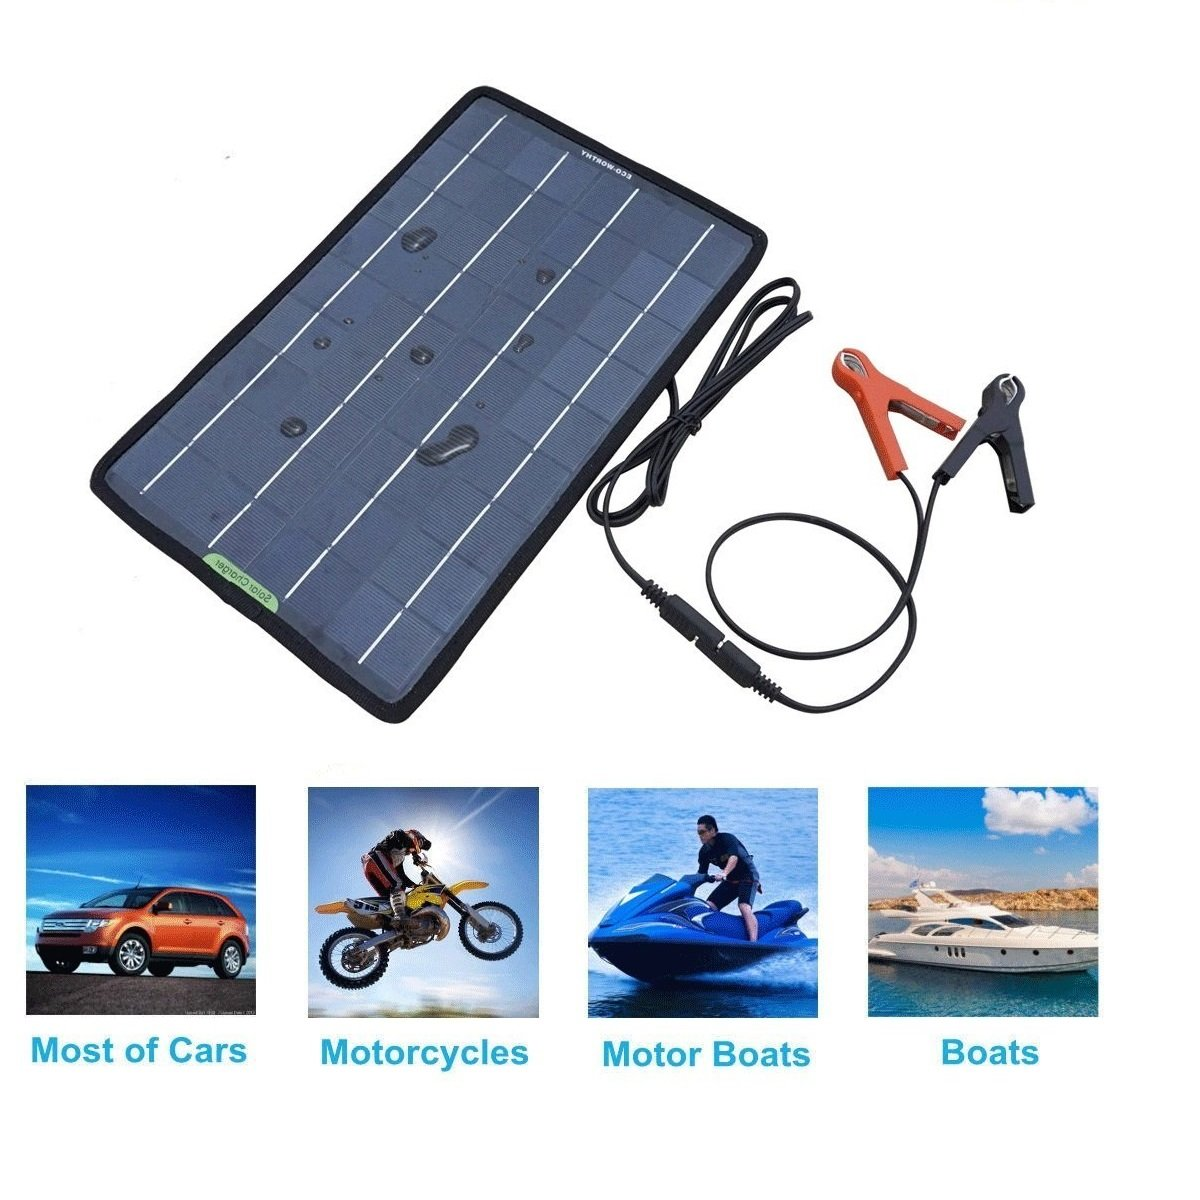 Eco Worthy 12 Volts 10 Watts Portable Power Solar Panel Battery Volt Car Diagram With Cutaway And Labeled Components Charger Backup For Boat Alligator Clip Adapter Business